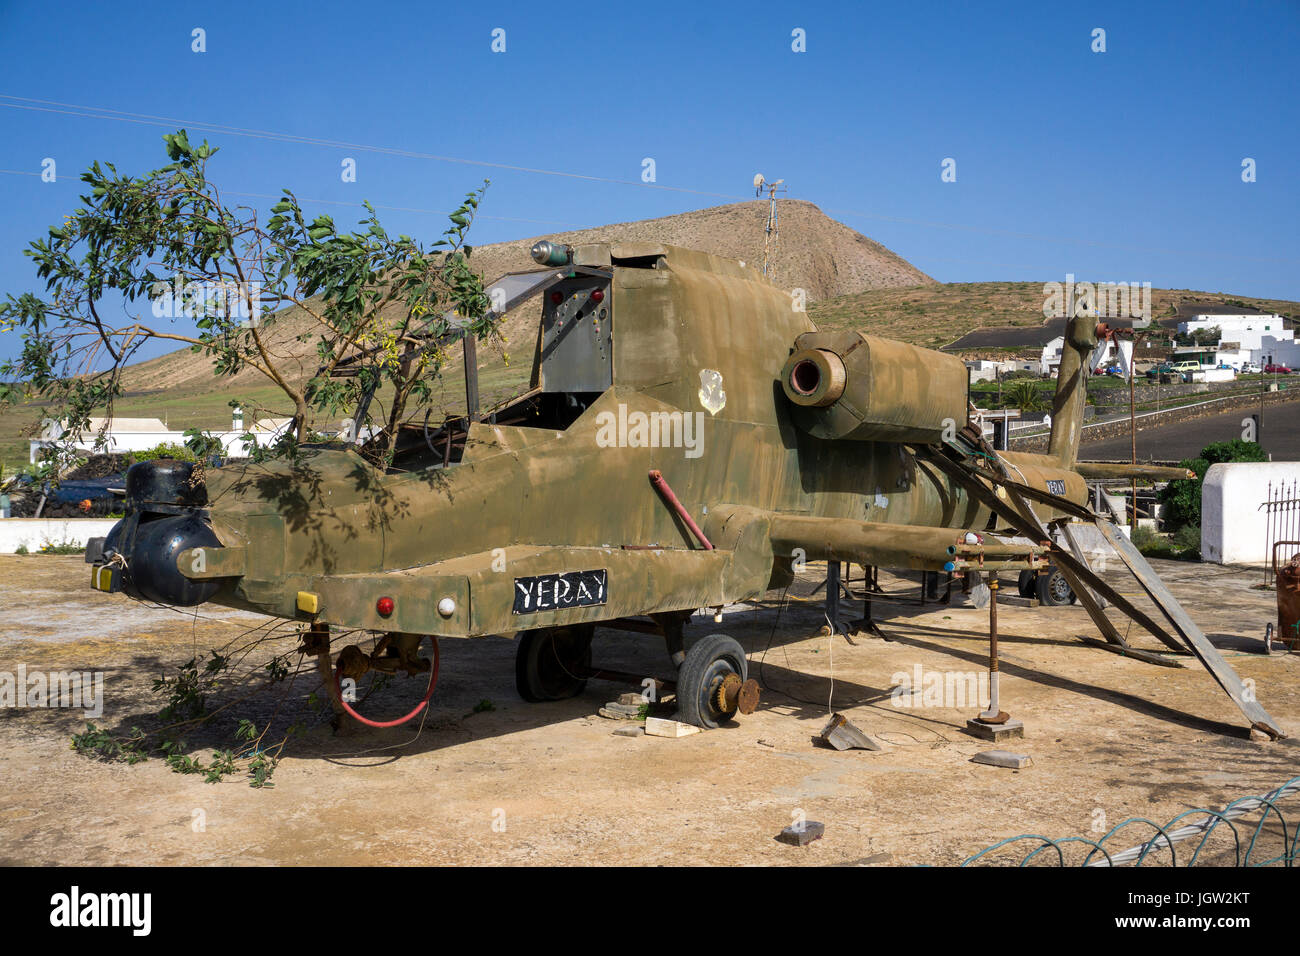 Curious property of a artist with a helicopter at garden, Las Casitas de Femes, Lanzarote island, Canary islands, - Stock Image